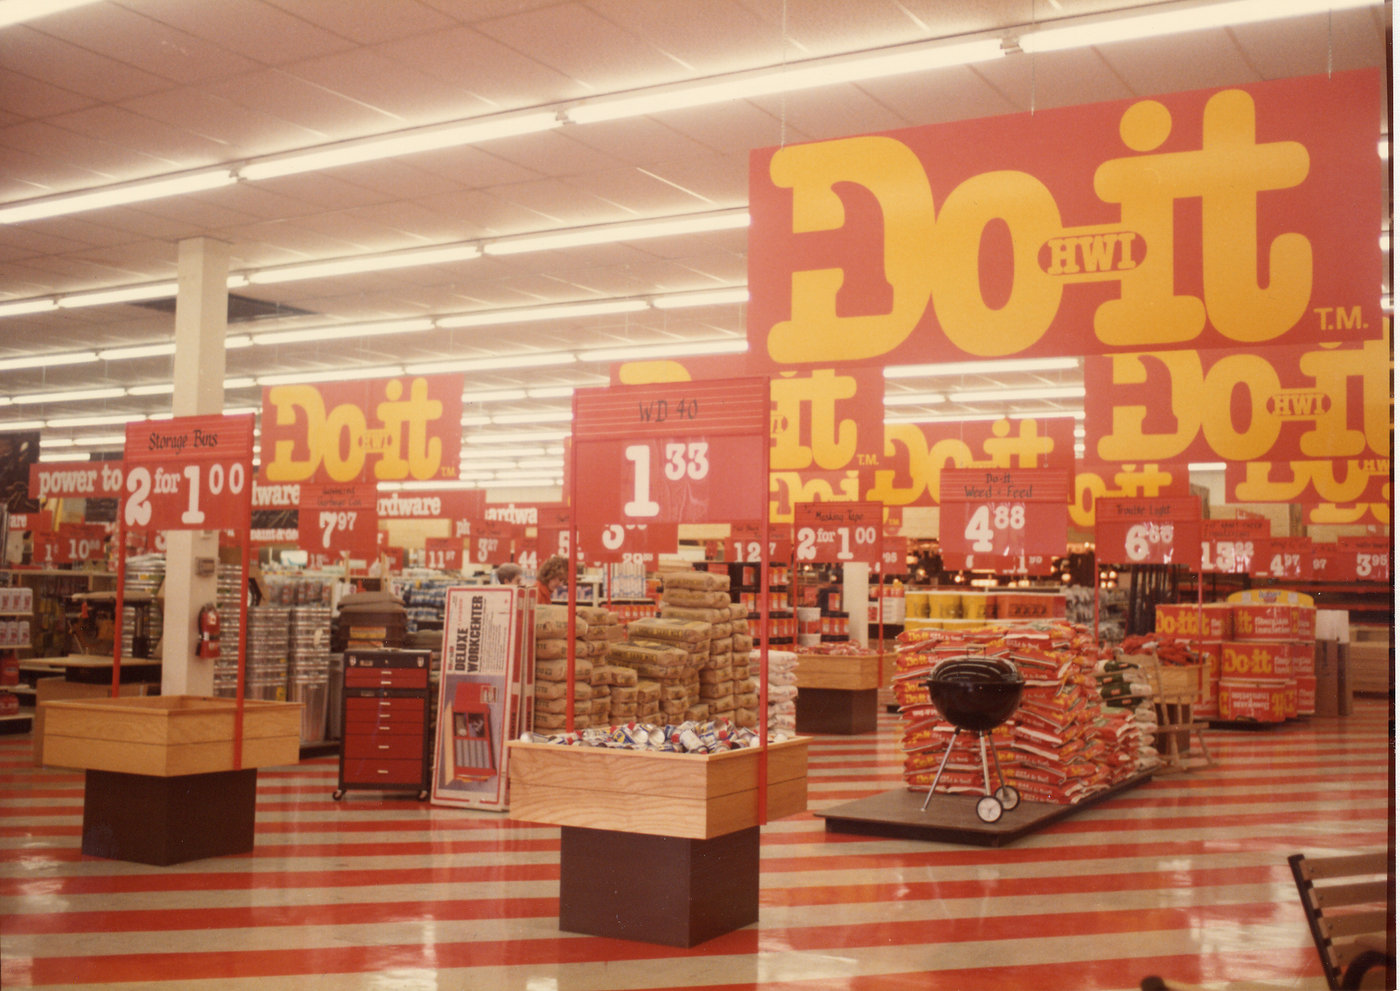 The bright colors of the Do it center store format revolutionized store design in the hardware industry and served as an effective weapon against big-box encroachment.